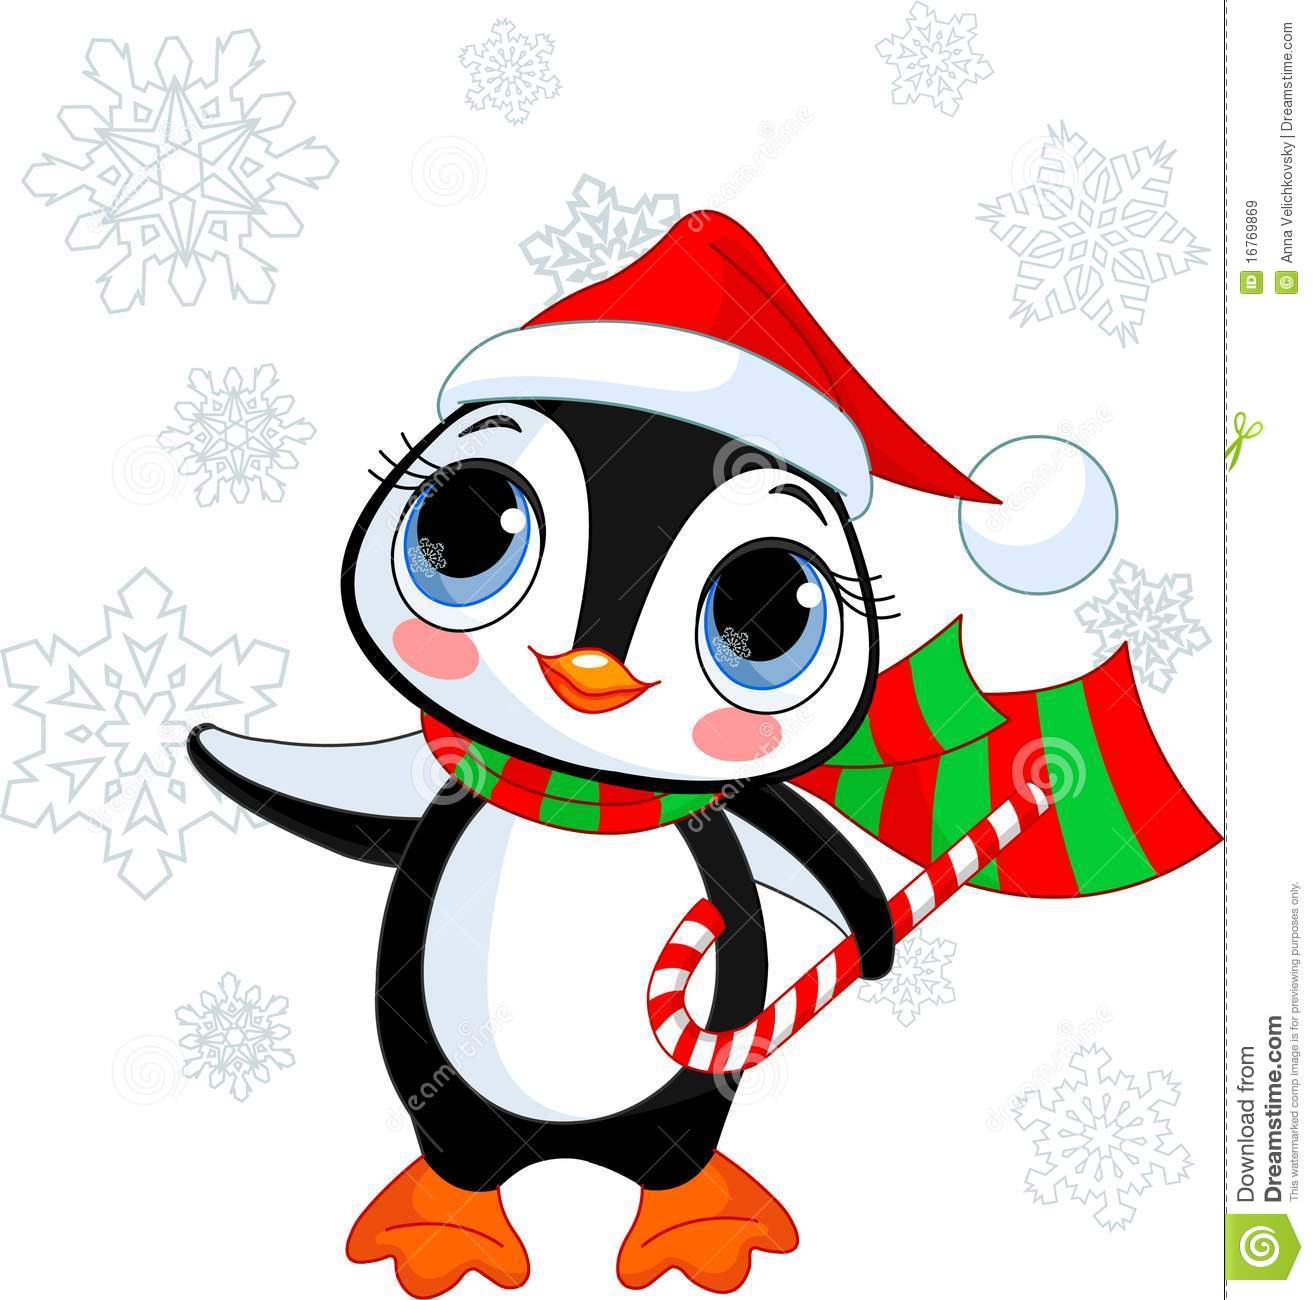 Cute Christmas Penguin Royalty Free Stock Images - Image: 16769869